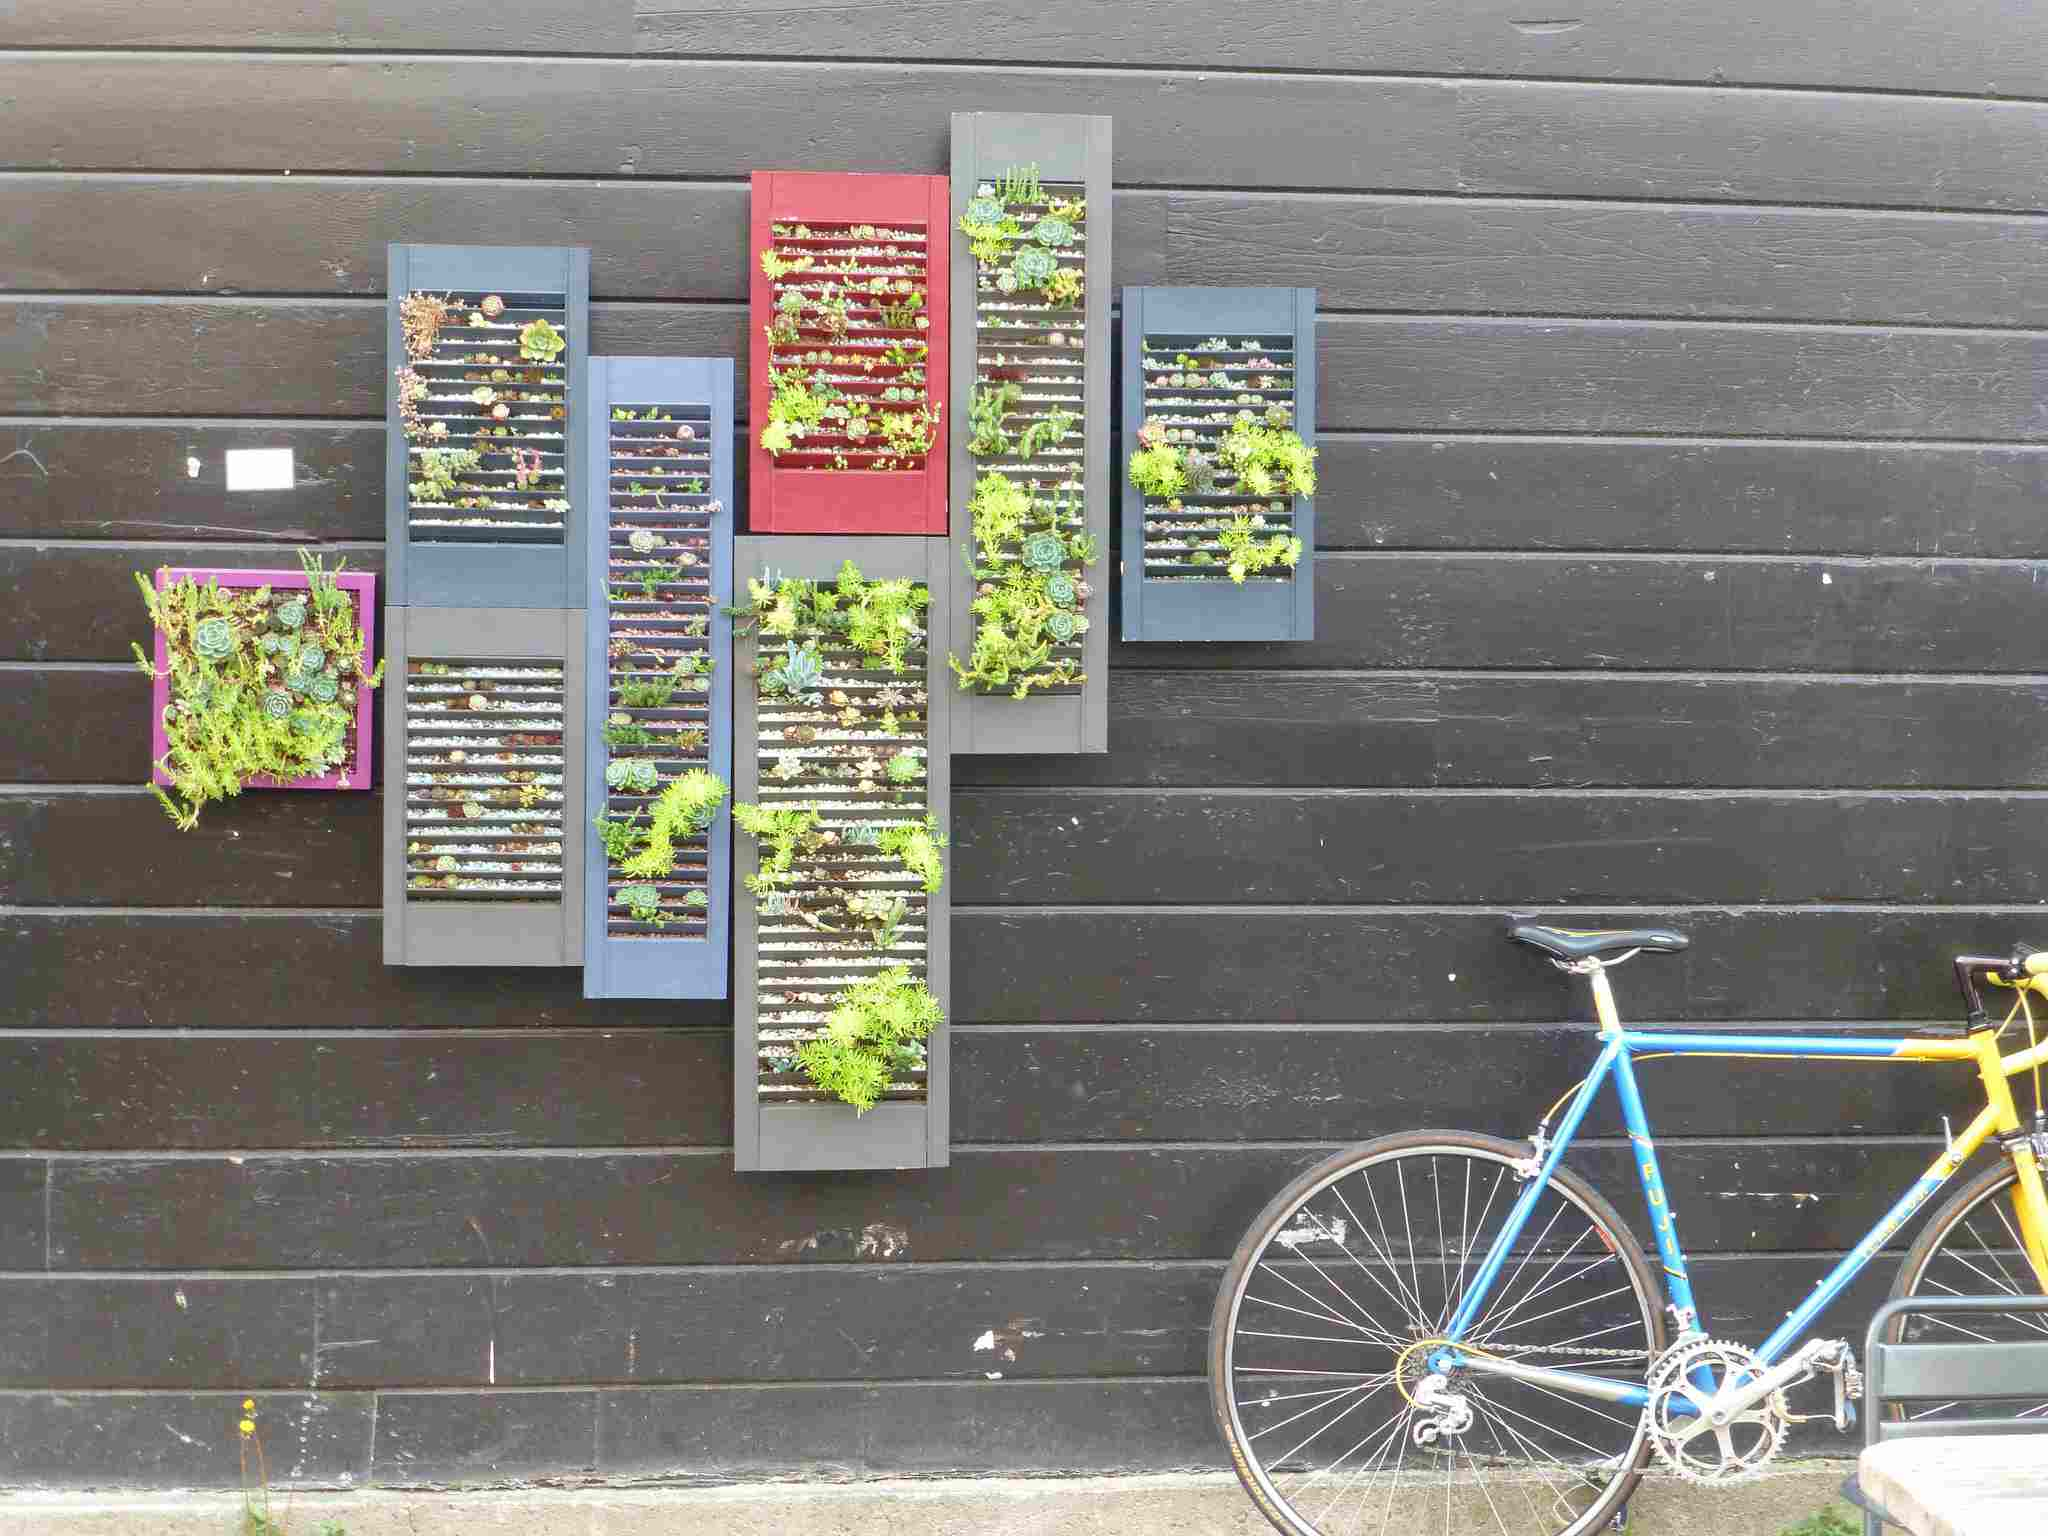 Living wall grown on shutters hanging on a wall near a bicycle.